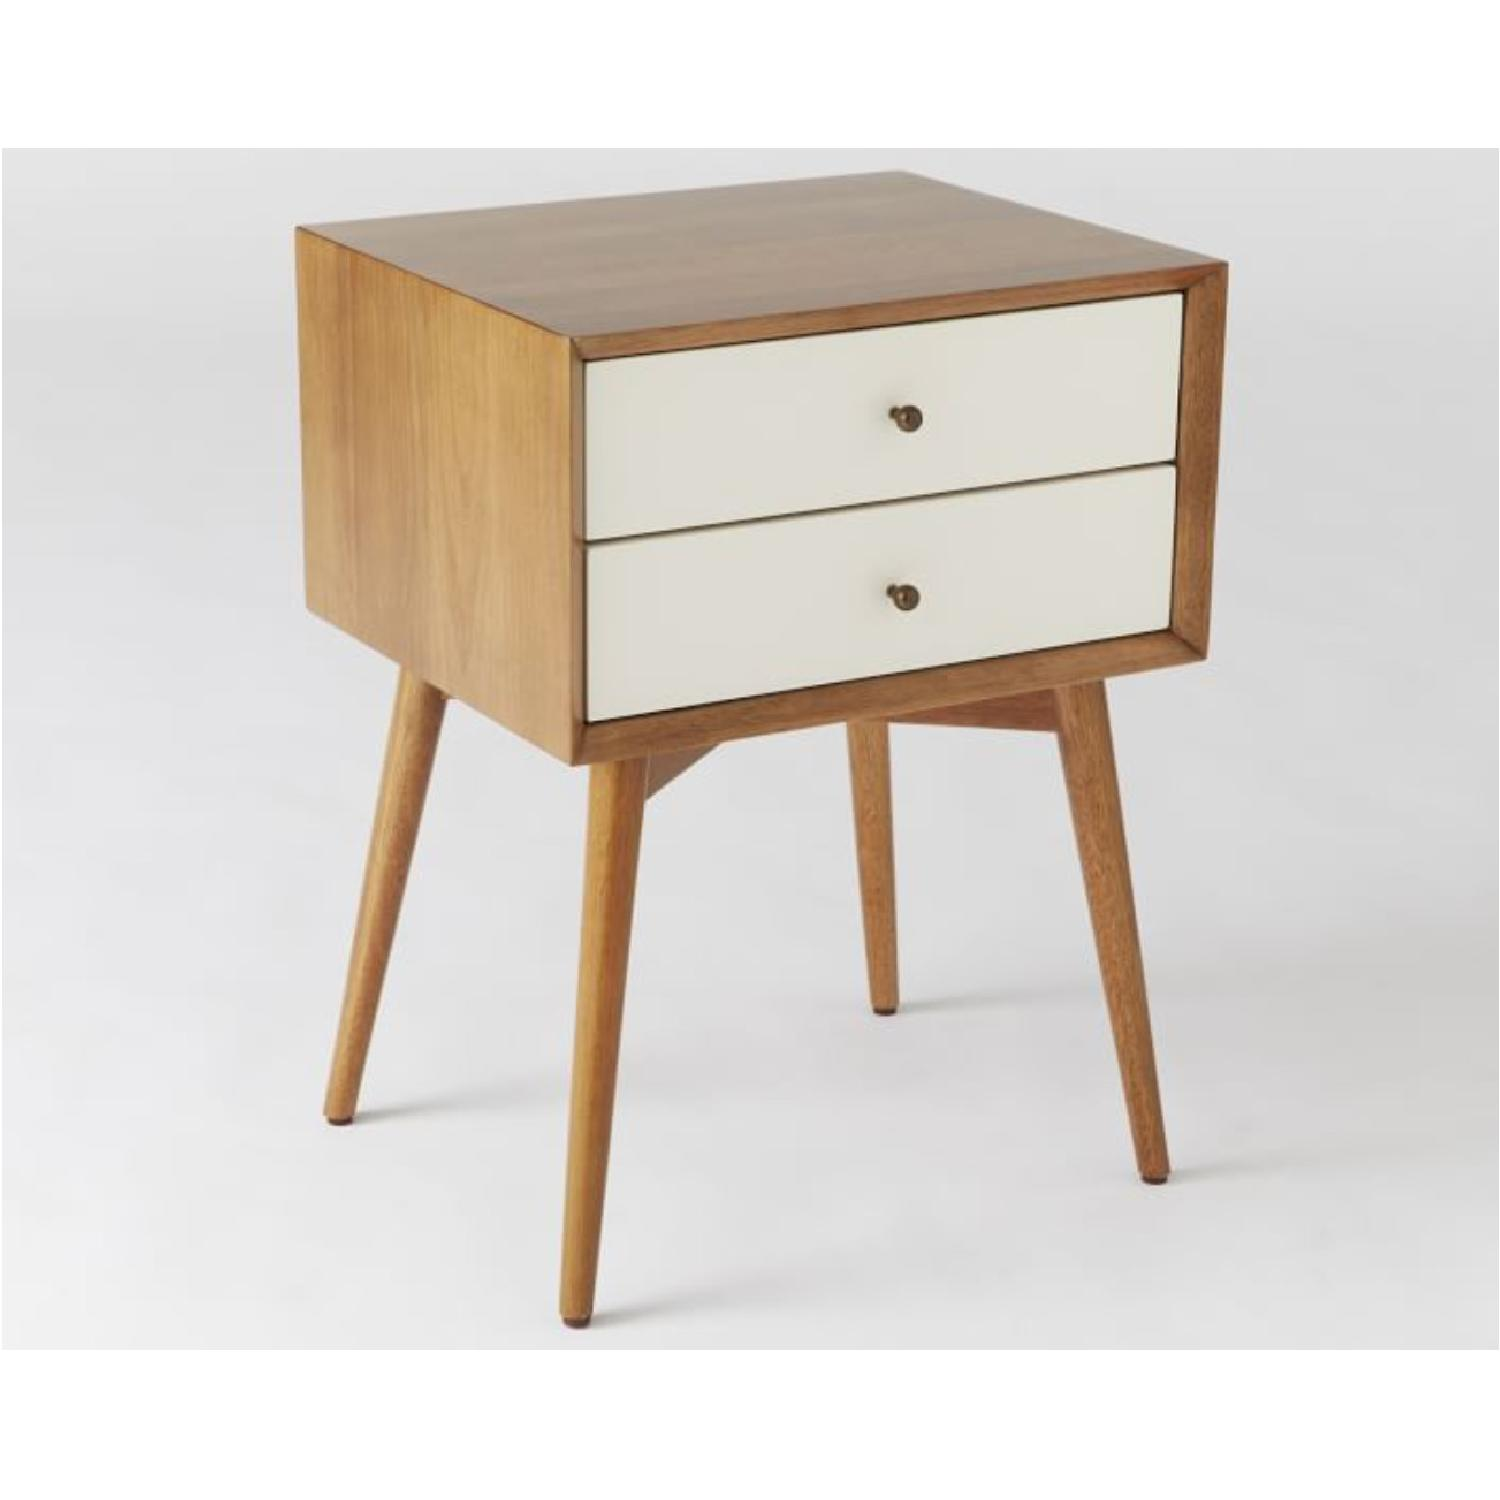 West Elm Mid-Century Nightstand in White Lacquer/Acorn - image-2